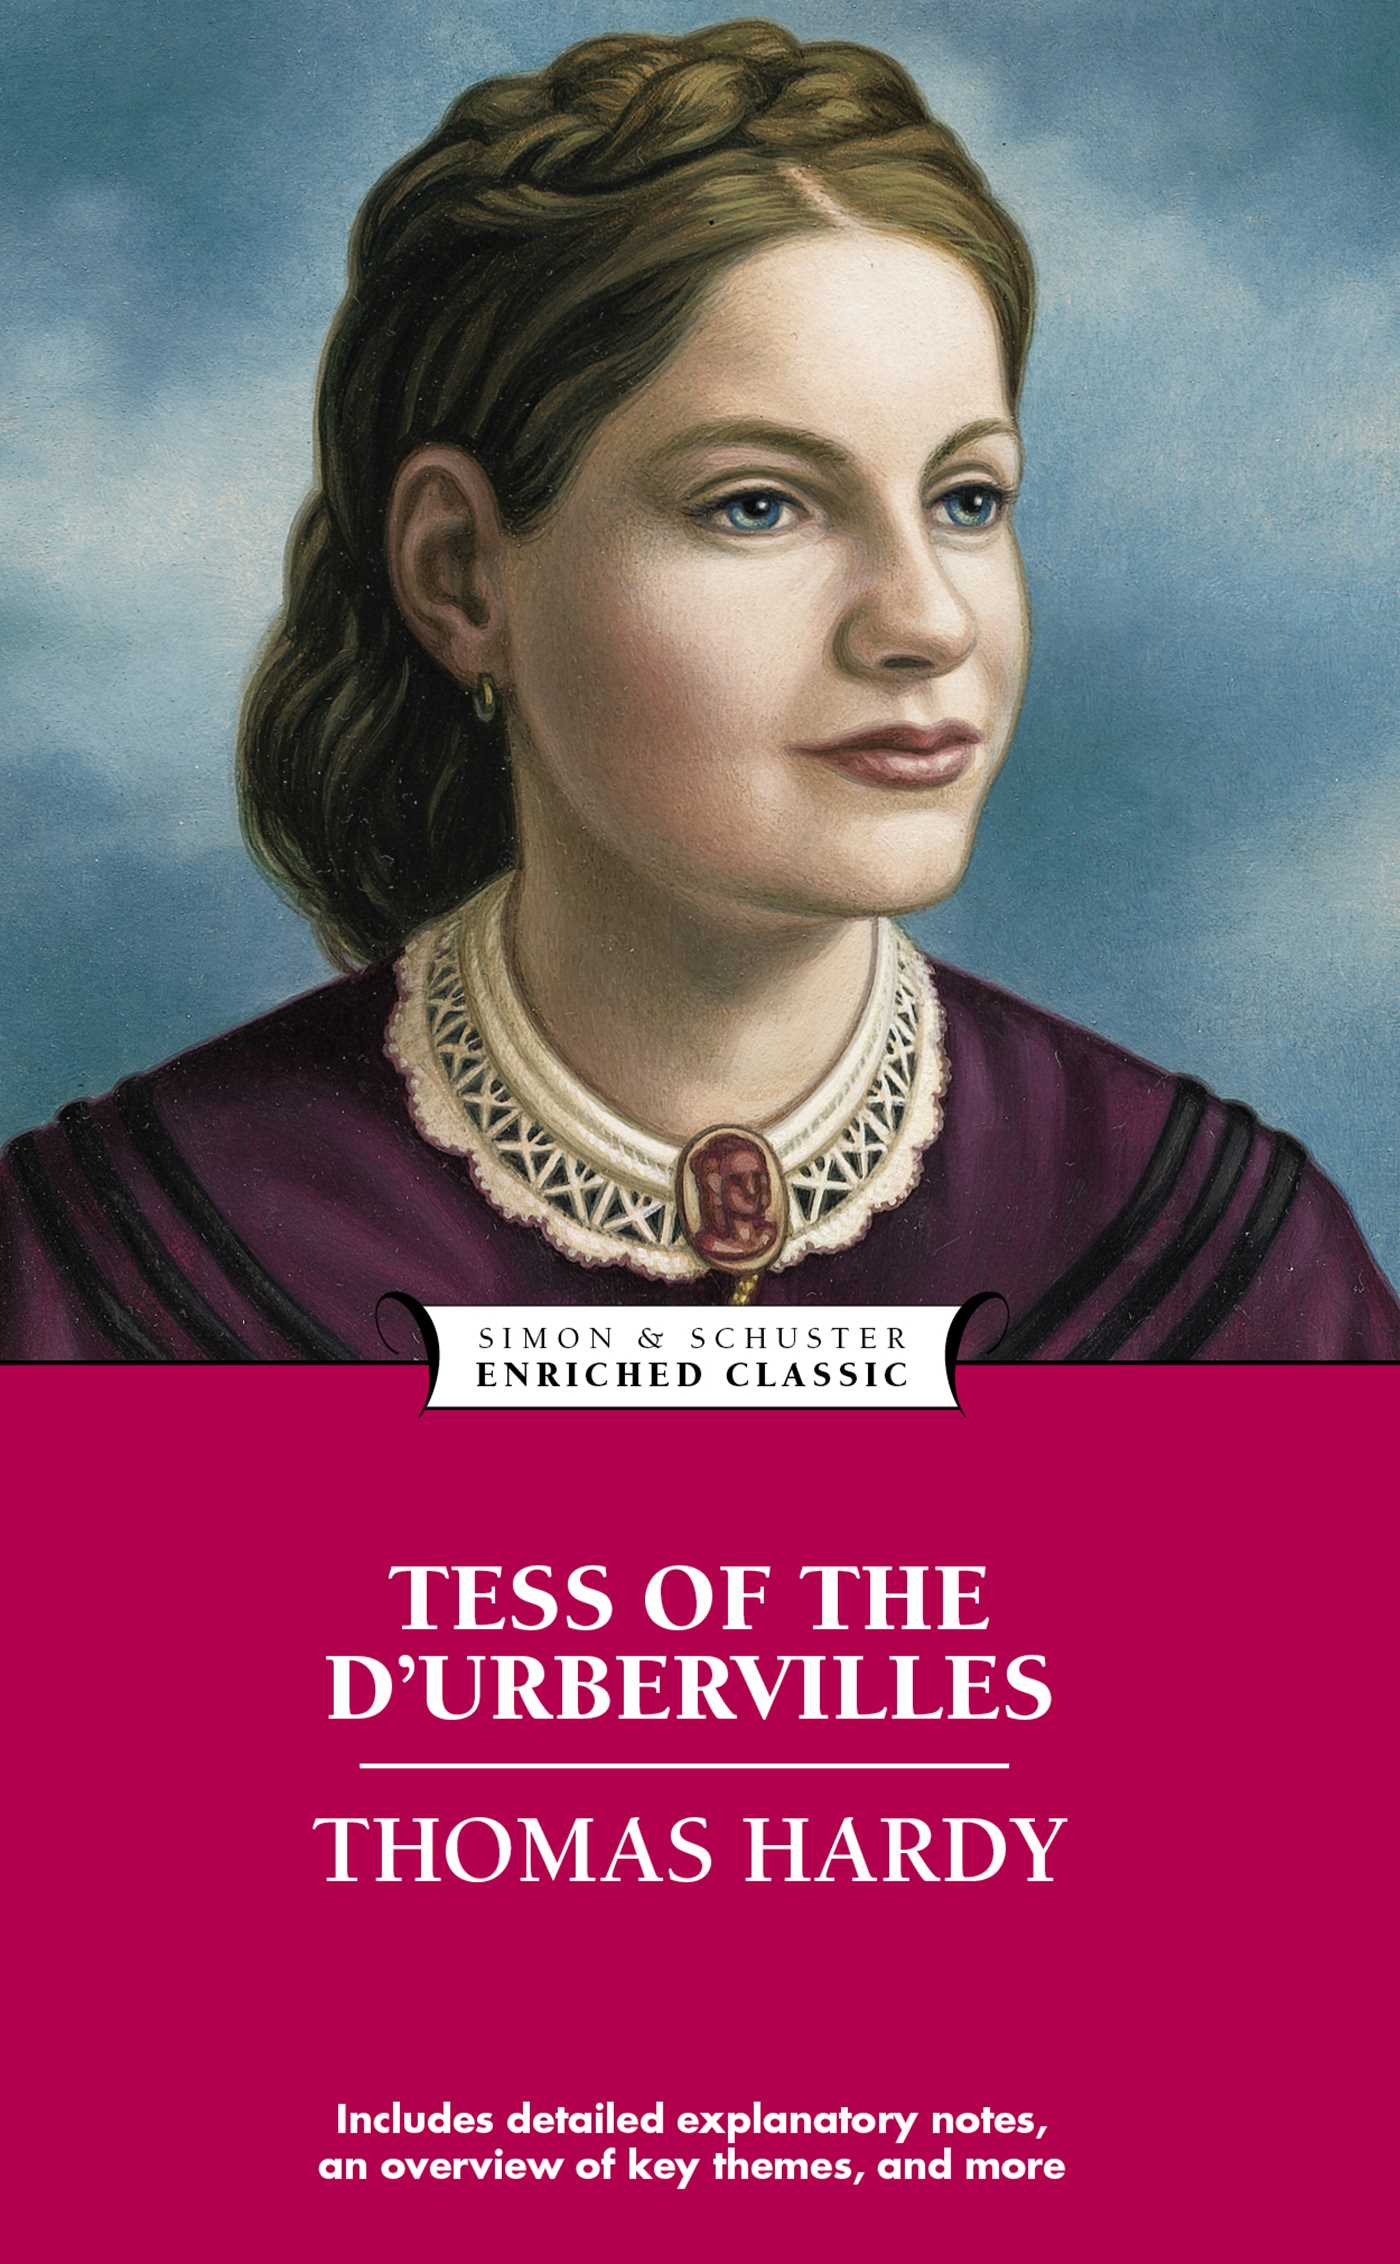 tess of the durbervilles relationship analysis